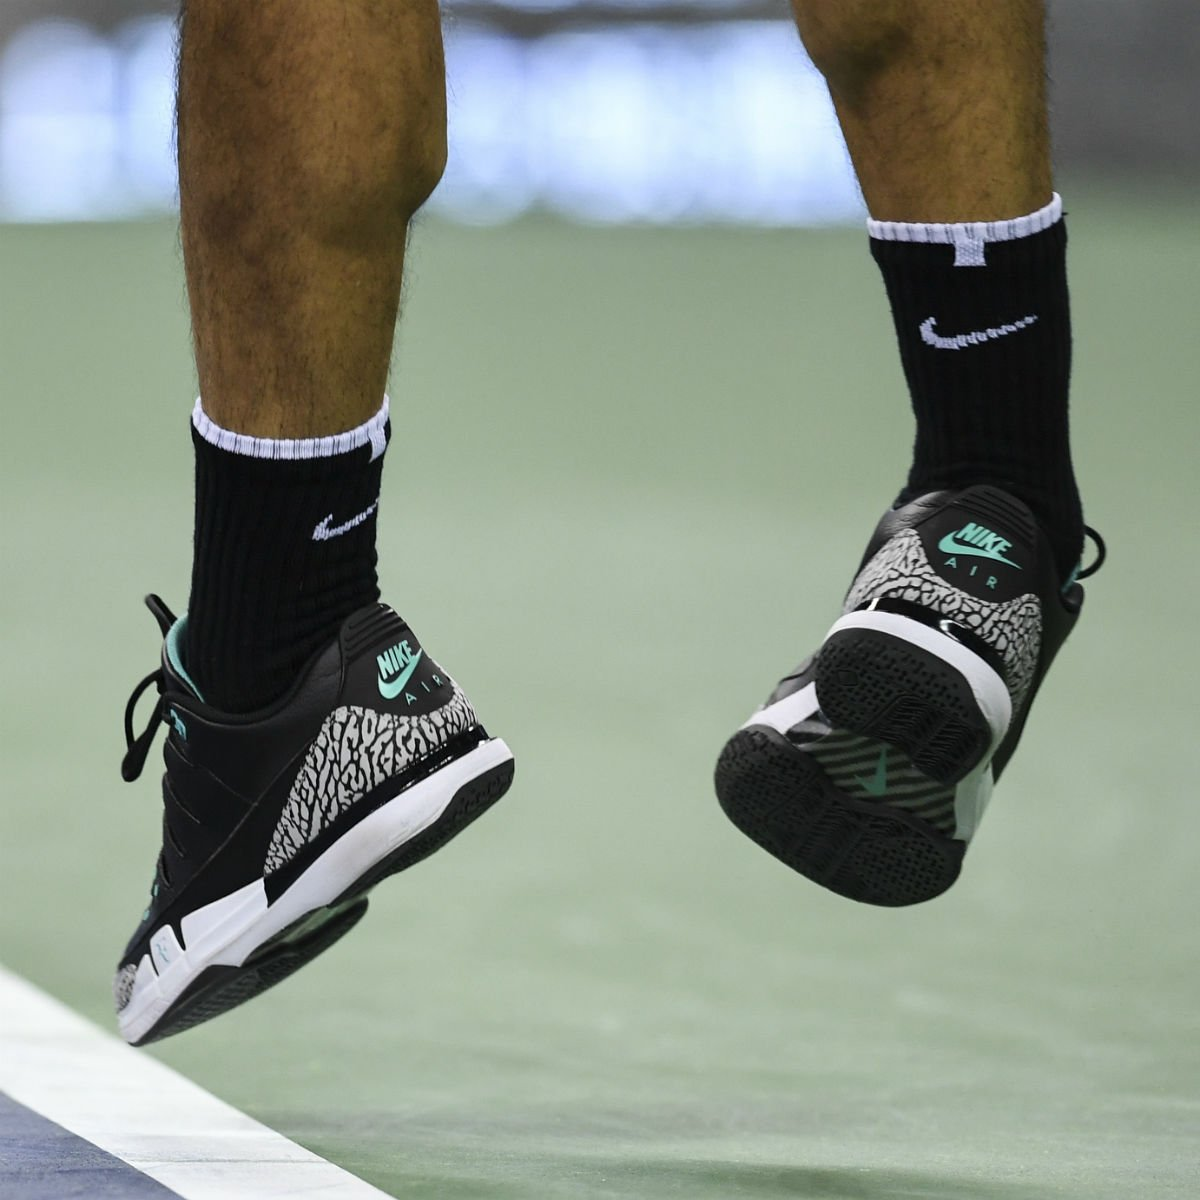 newest e3ed4 db2c5 solewatch: @rogerfederer wearing the